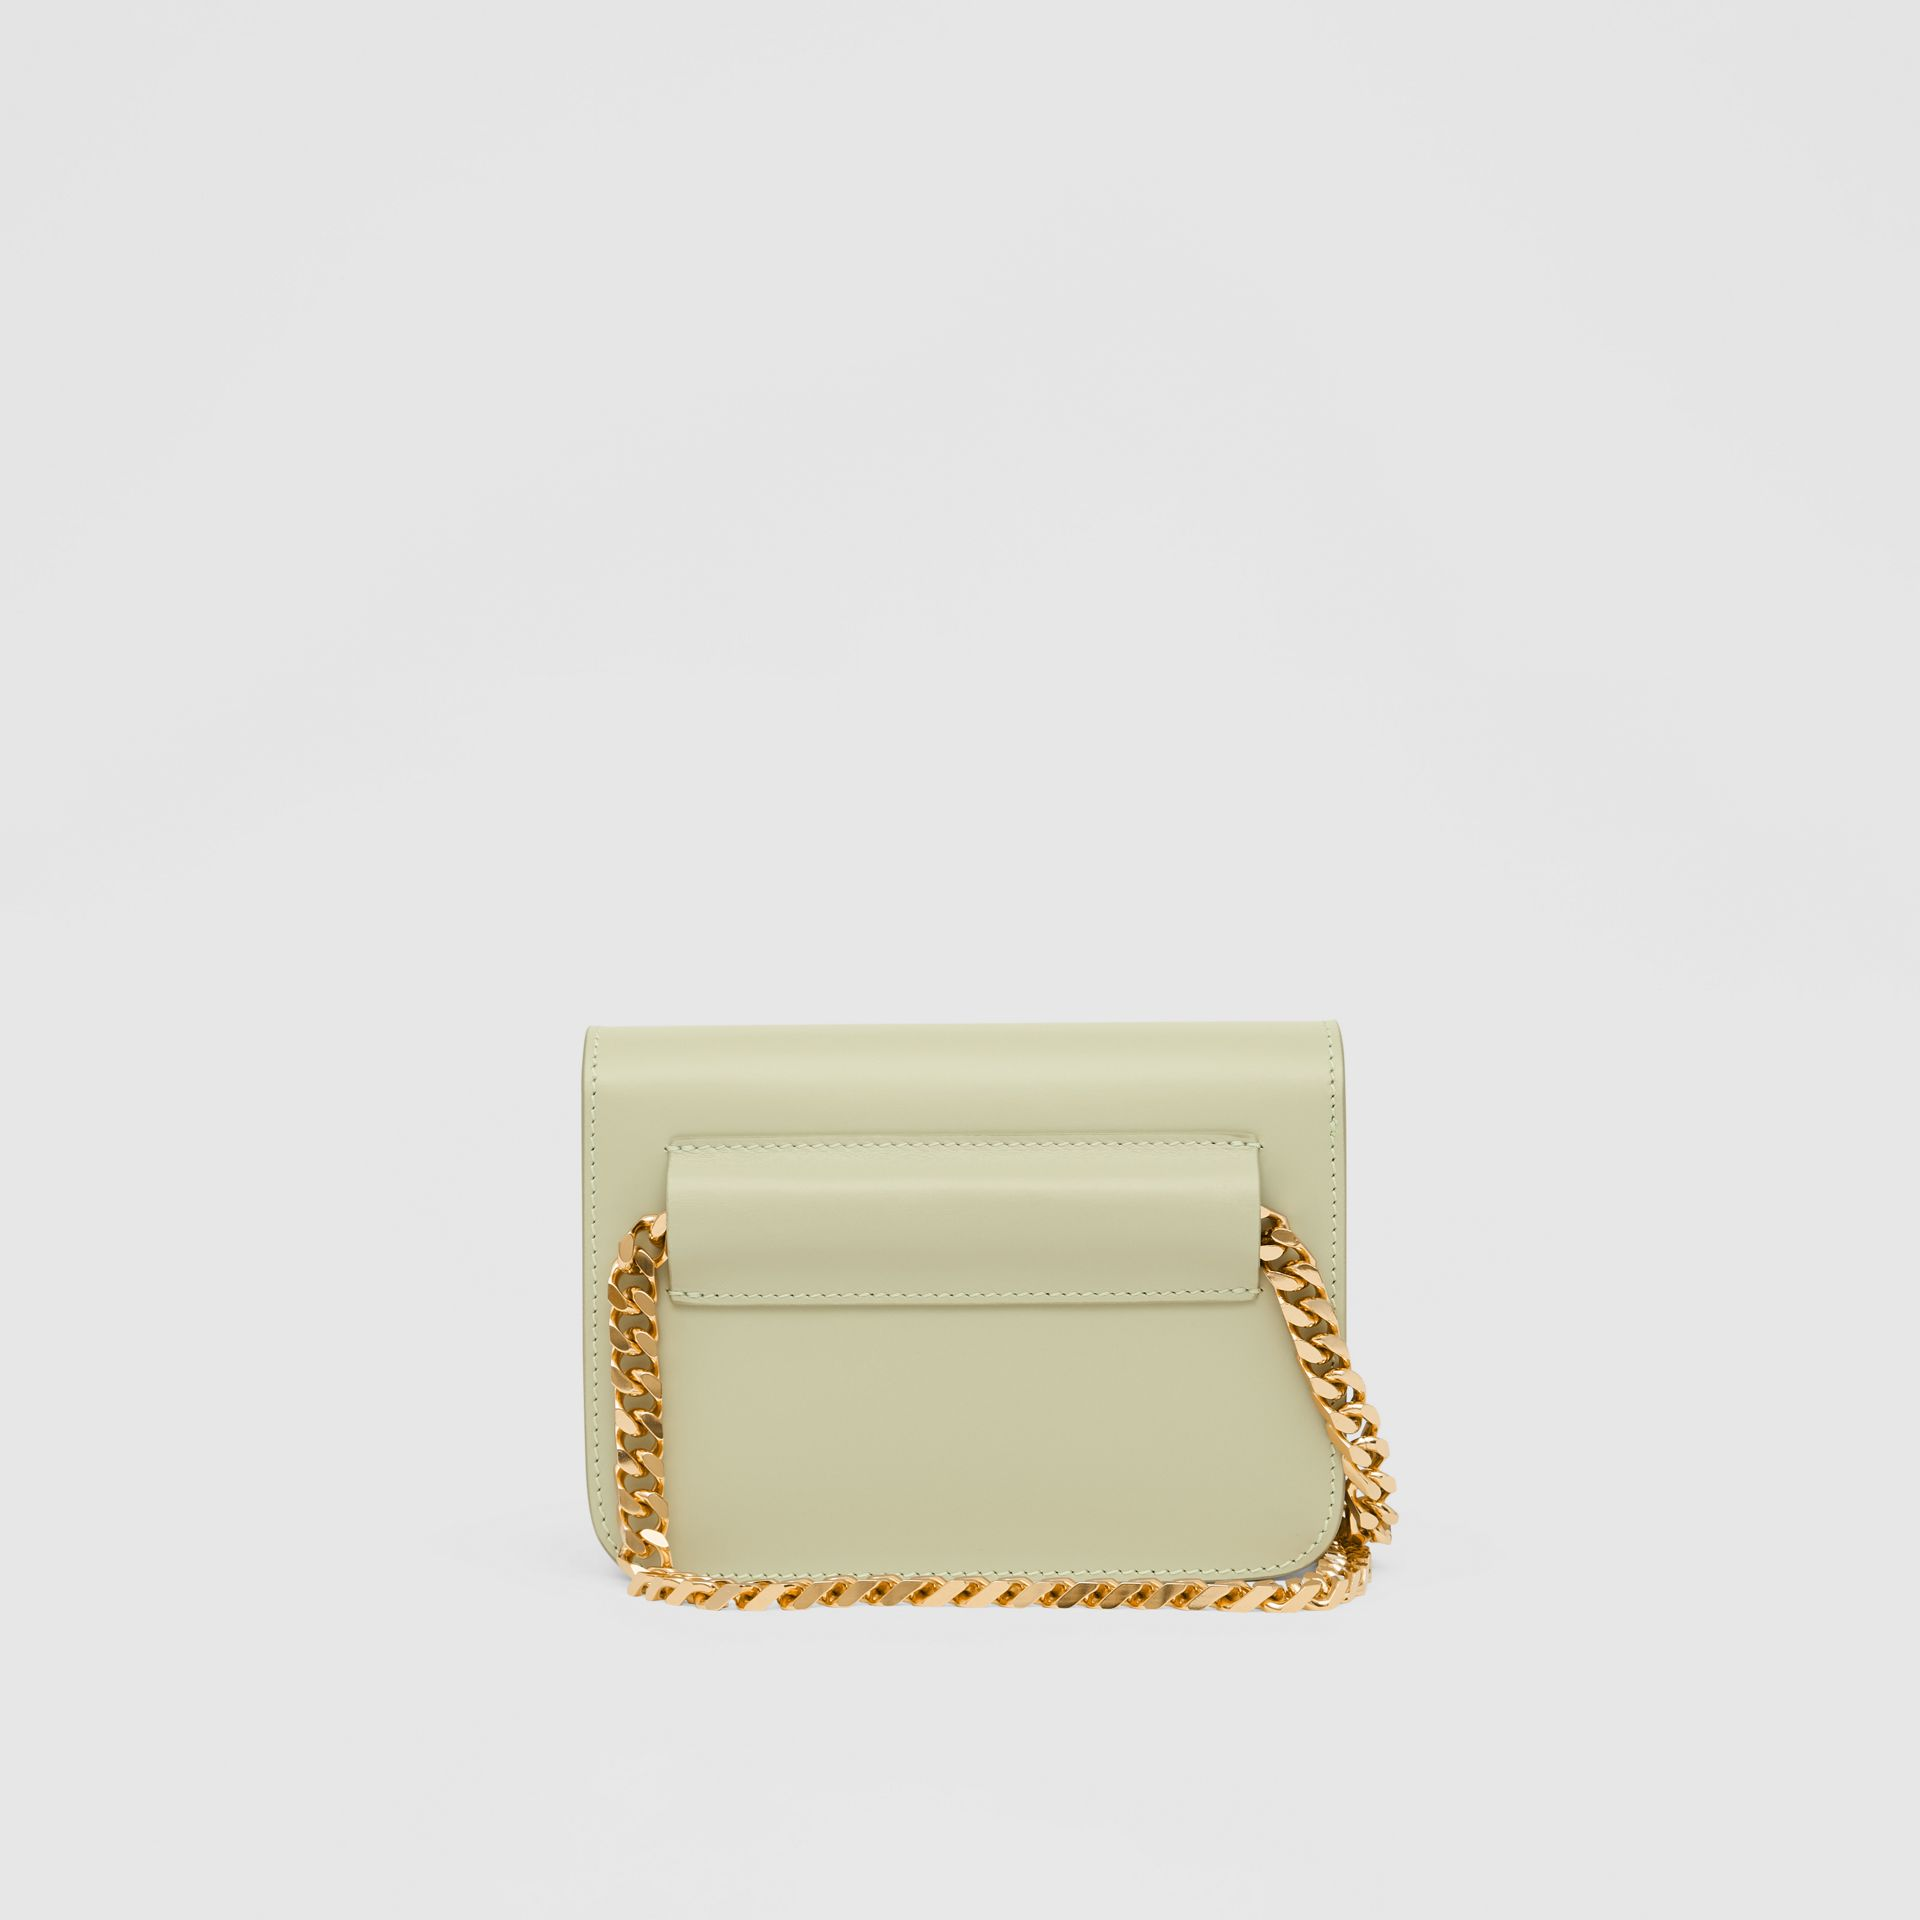 Belted Leather TB Bag in Pale Sage - Women | Burberry - gallery image 5